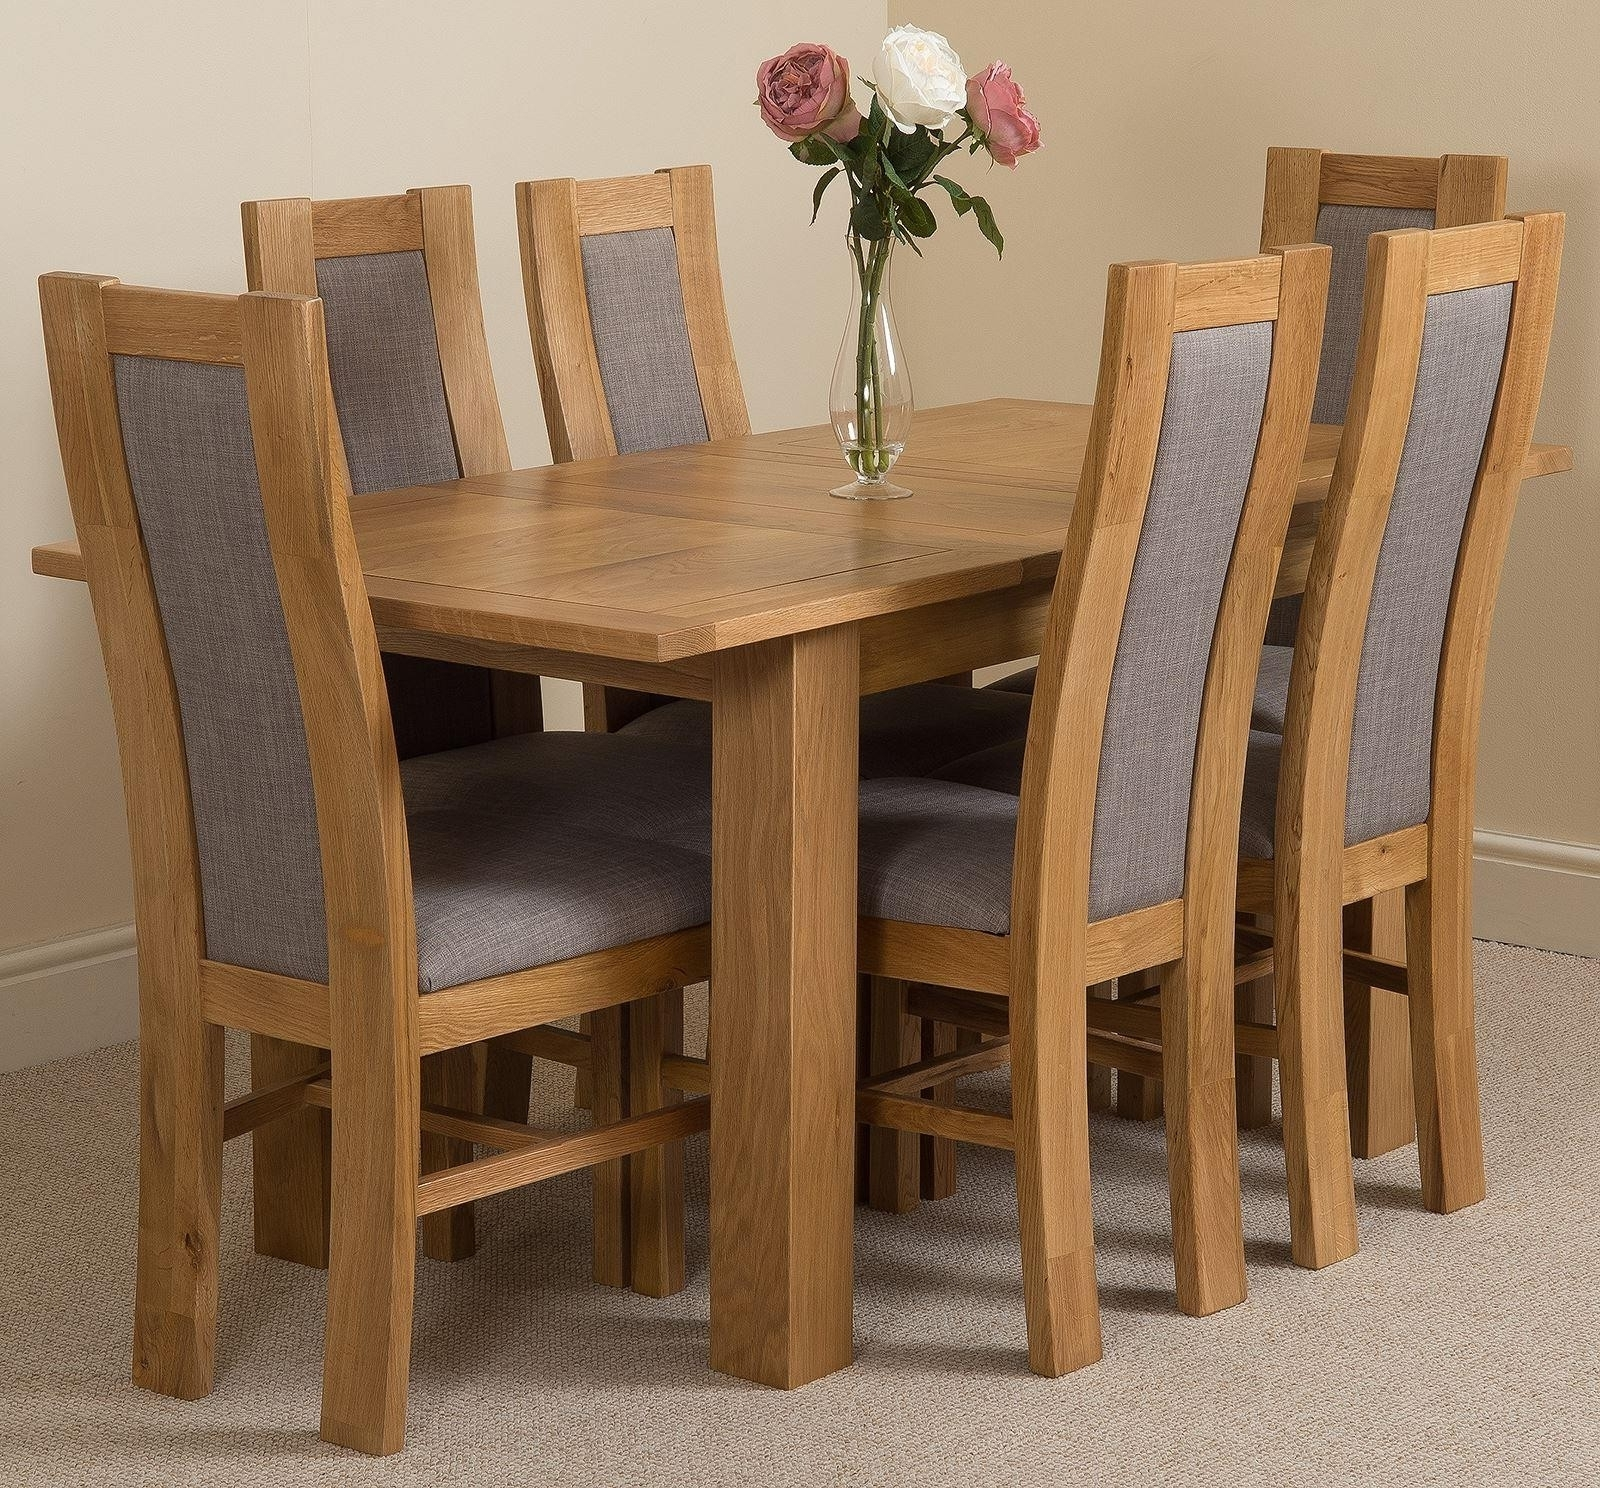 Oak Fabric Dining Chairs Throughout Most Recent Hampton Dining Set With 6 Stanford Chairs (View 12 of 25)